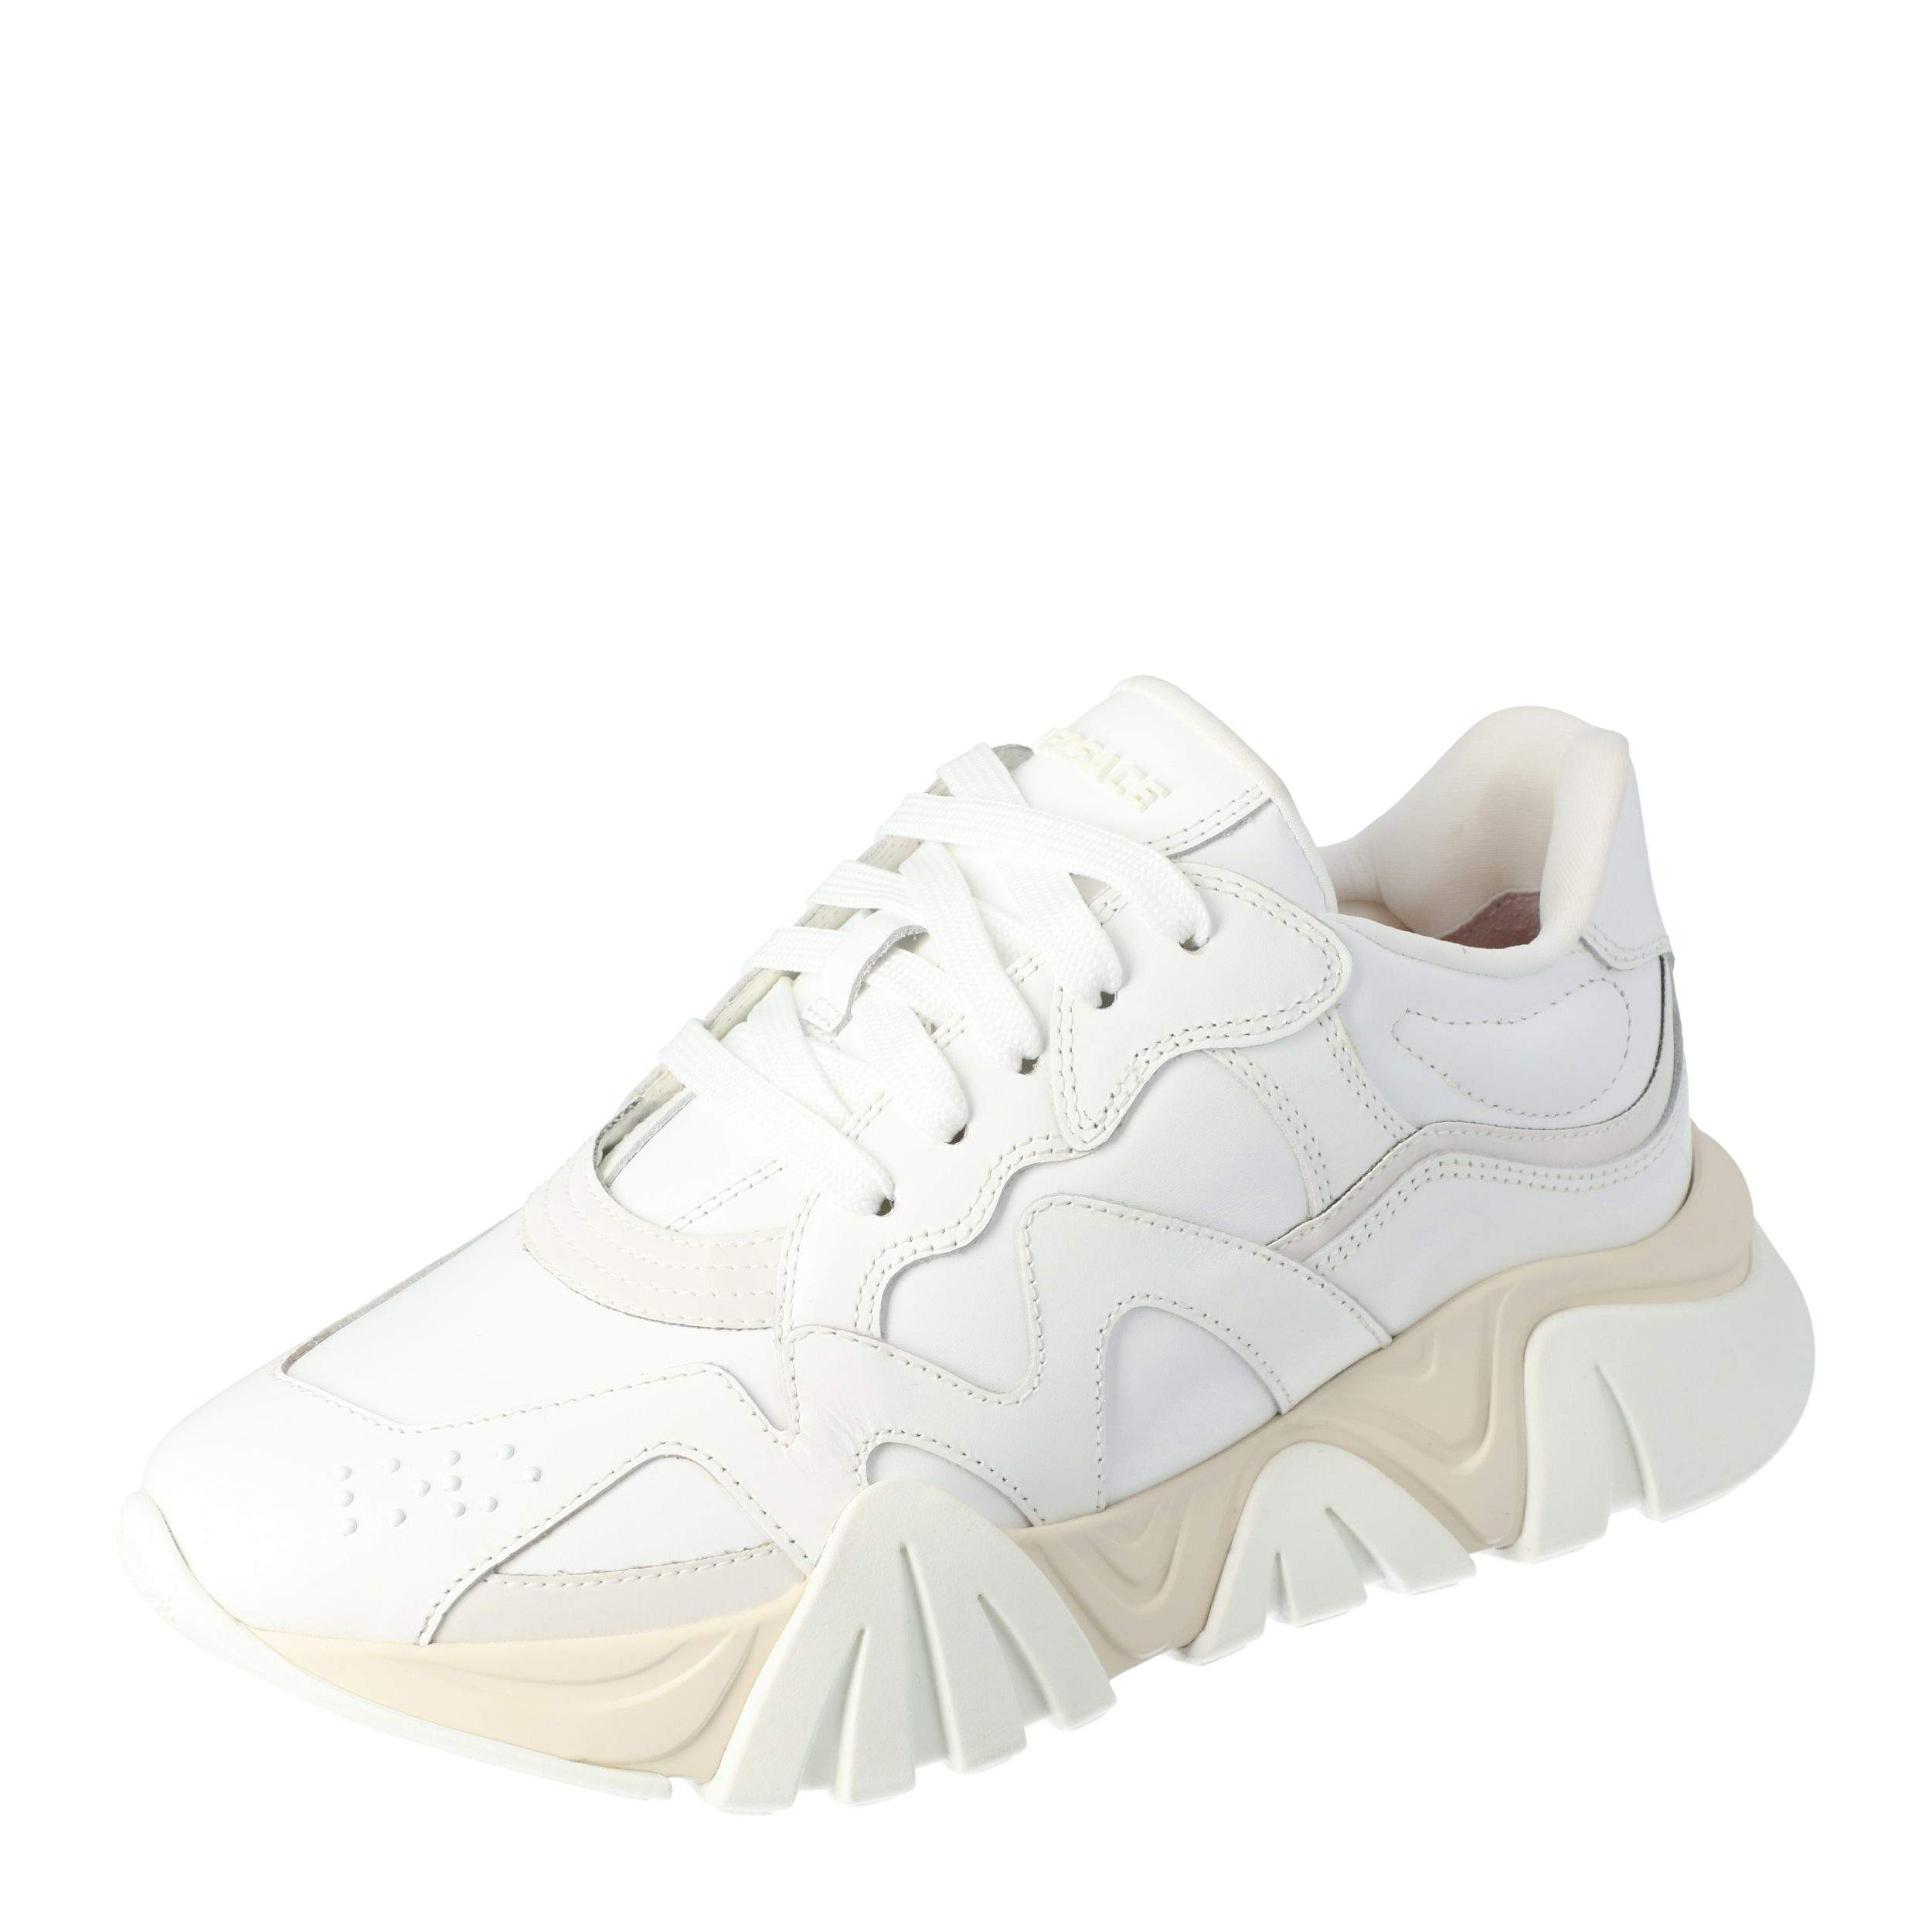 Versace White Leather Squalo Platform Sneakers Size 40.5